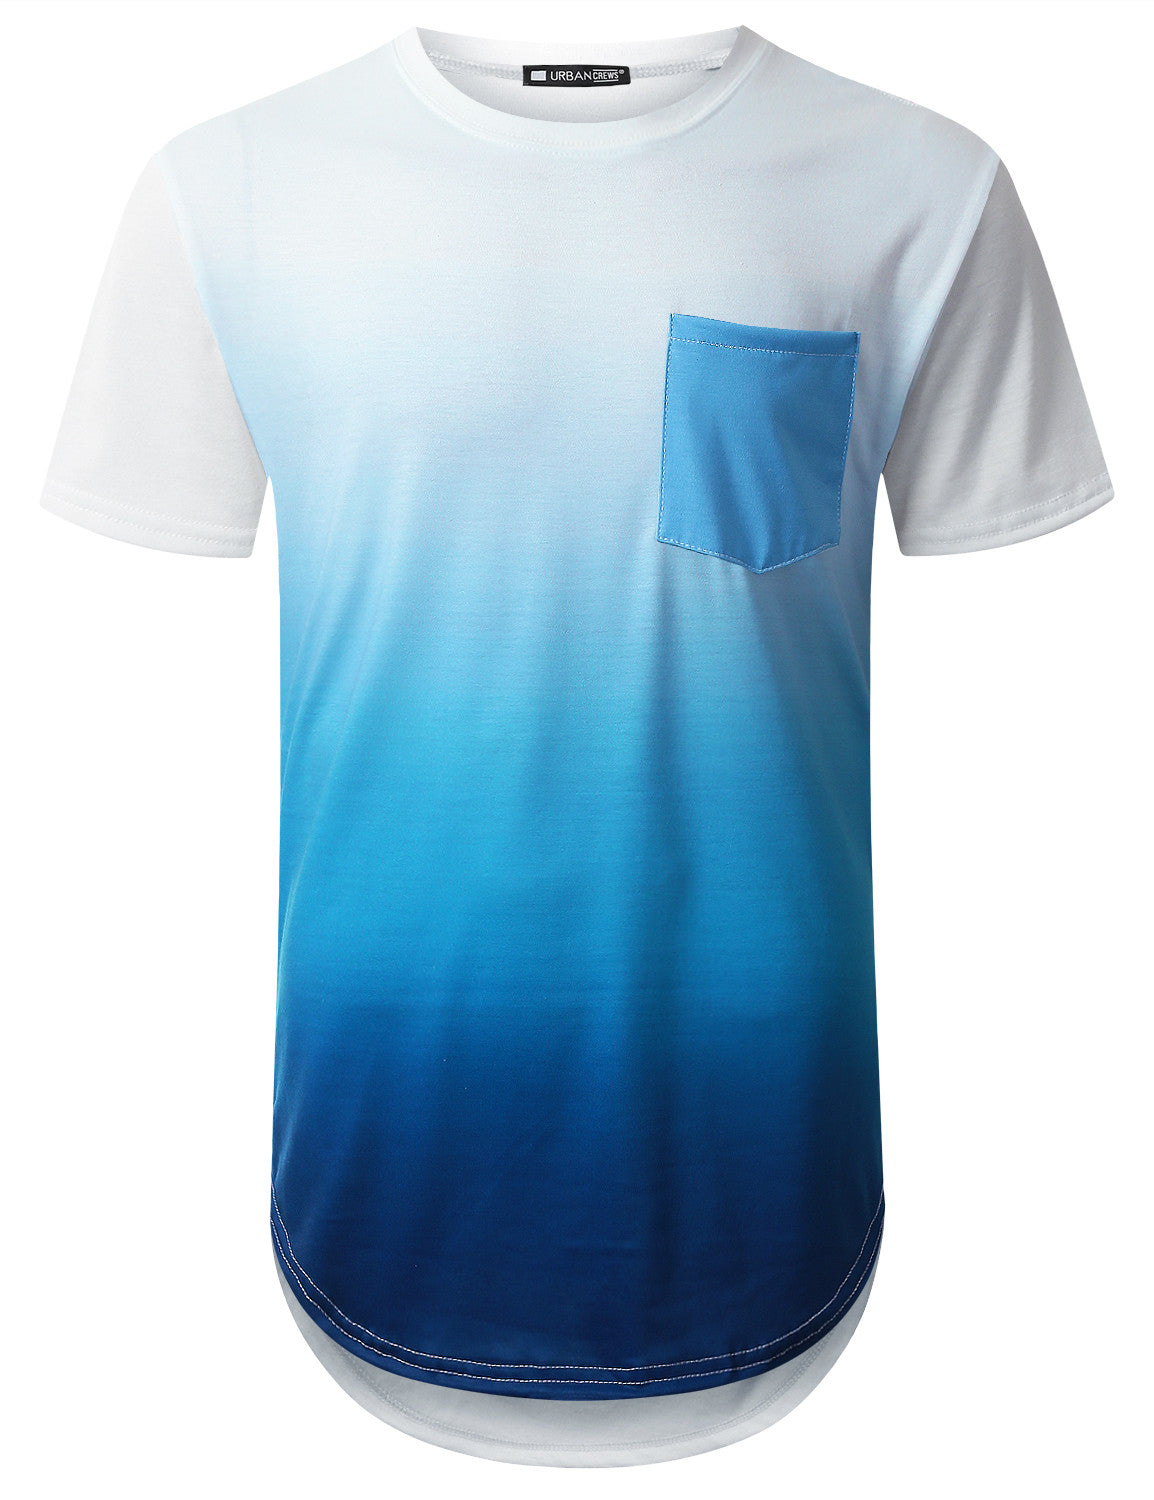 WHITE Sea Blue Pocket Longline T-shirt - URBANCREWS